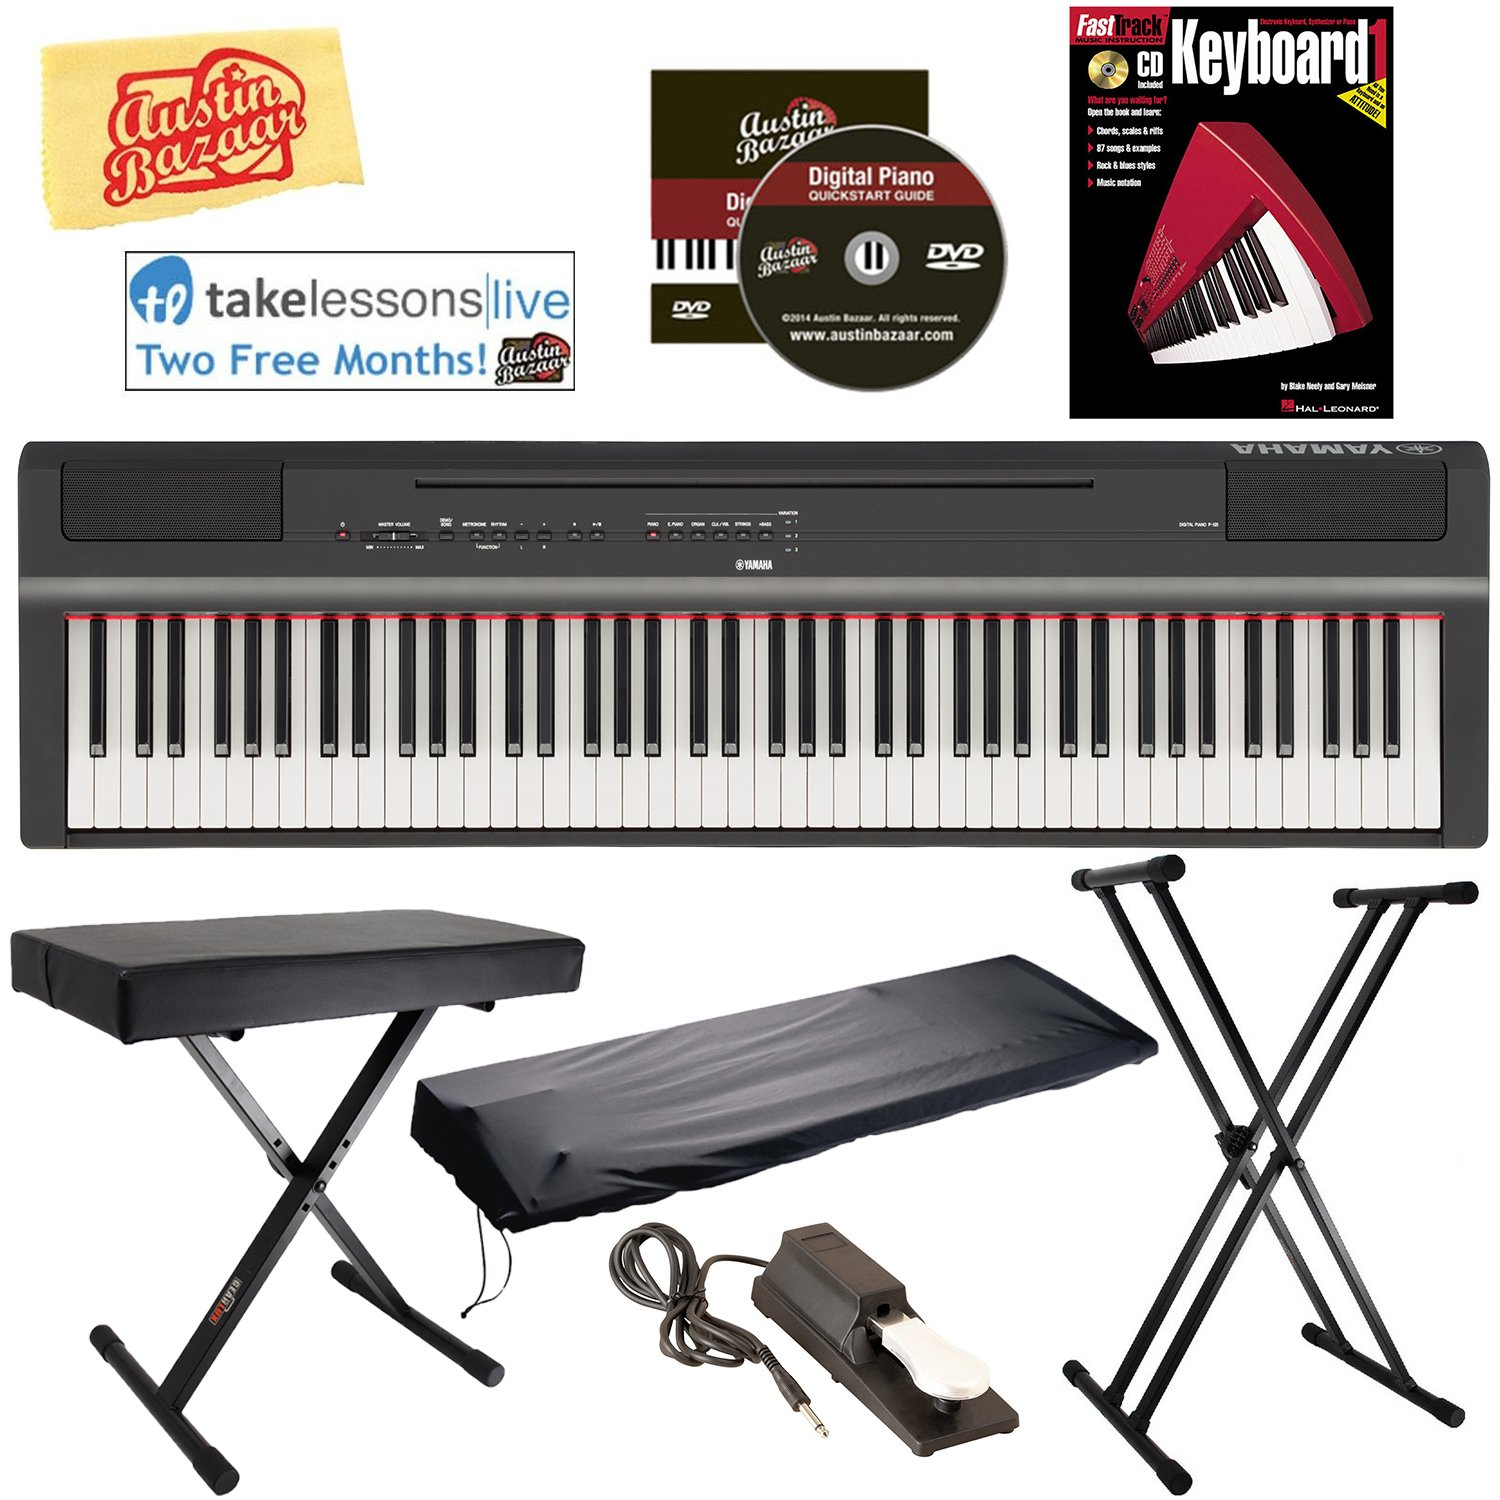 Yamaha P-125 Digital Piano - Black Bundle with Adjustable Stand, Bench, Sustain Pedal, Dust Cover, Instructional Book, Online Lessons, Austin Bazaar Instructional DVD, and Polishing Cloth by Yamaha